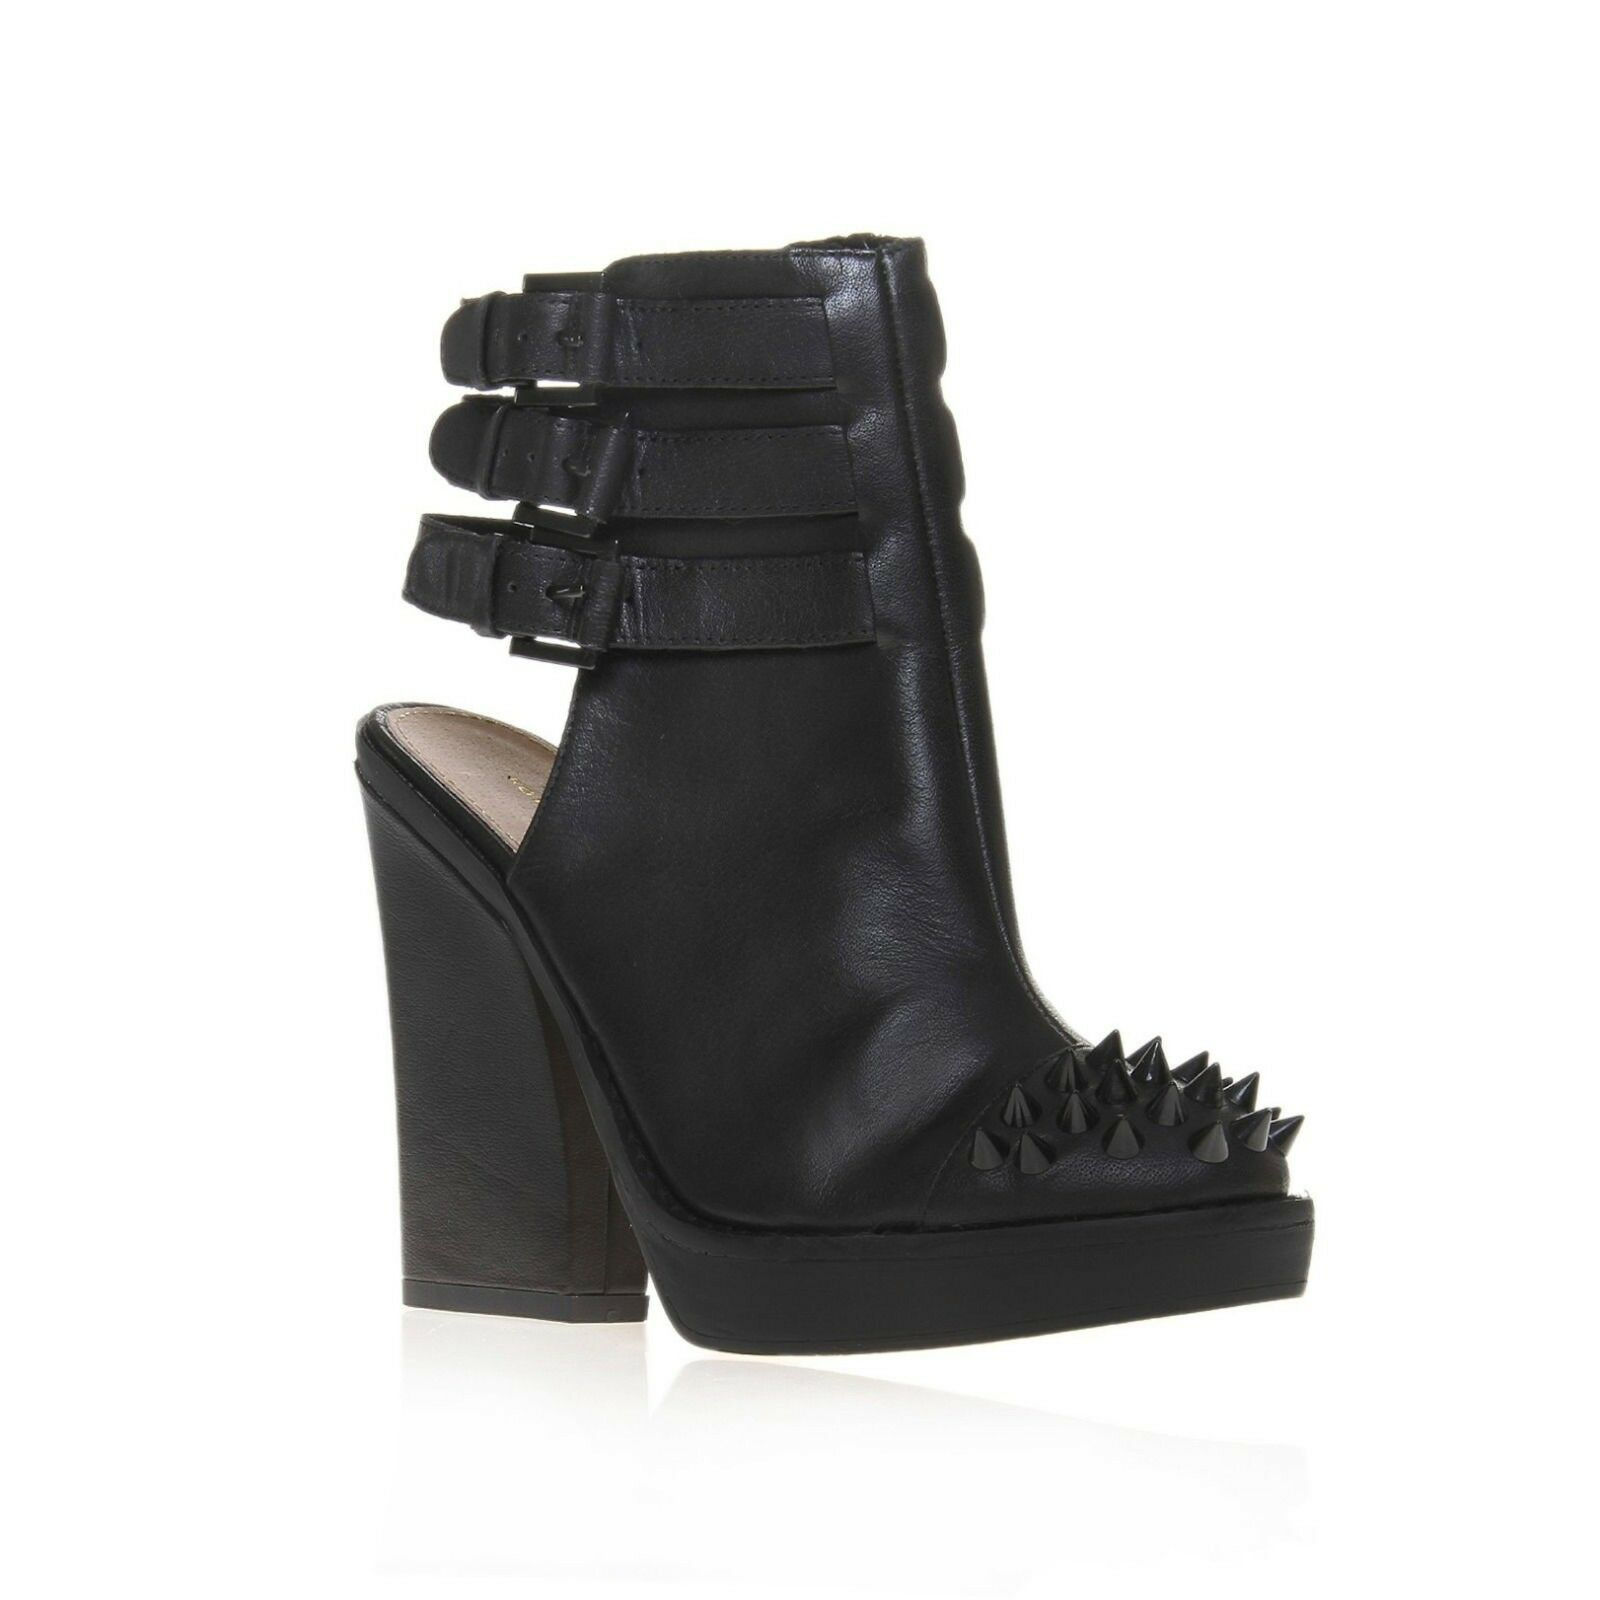 KG by Kurt Geiger Black Vex Leather Studded Ankle Boots NEW 8 39 9 40 SOLD OUT